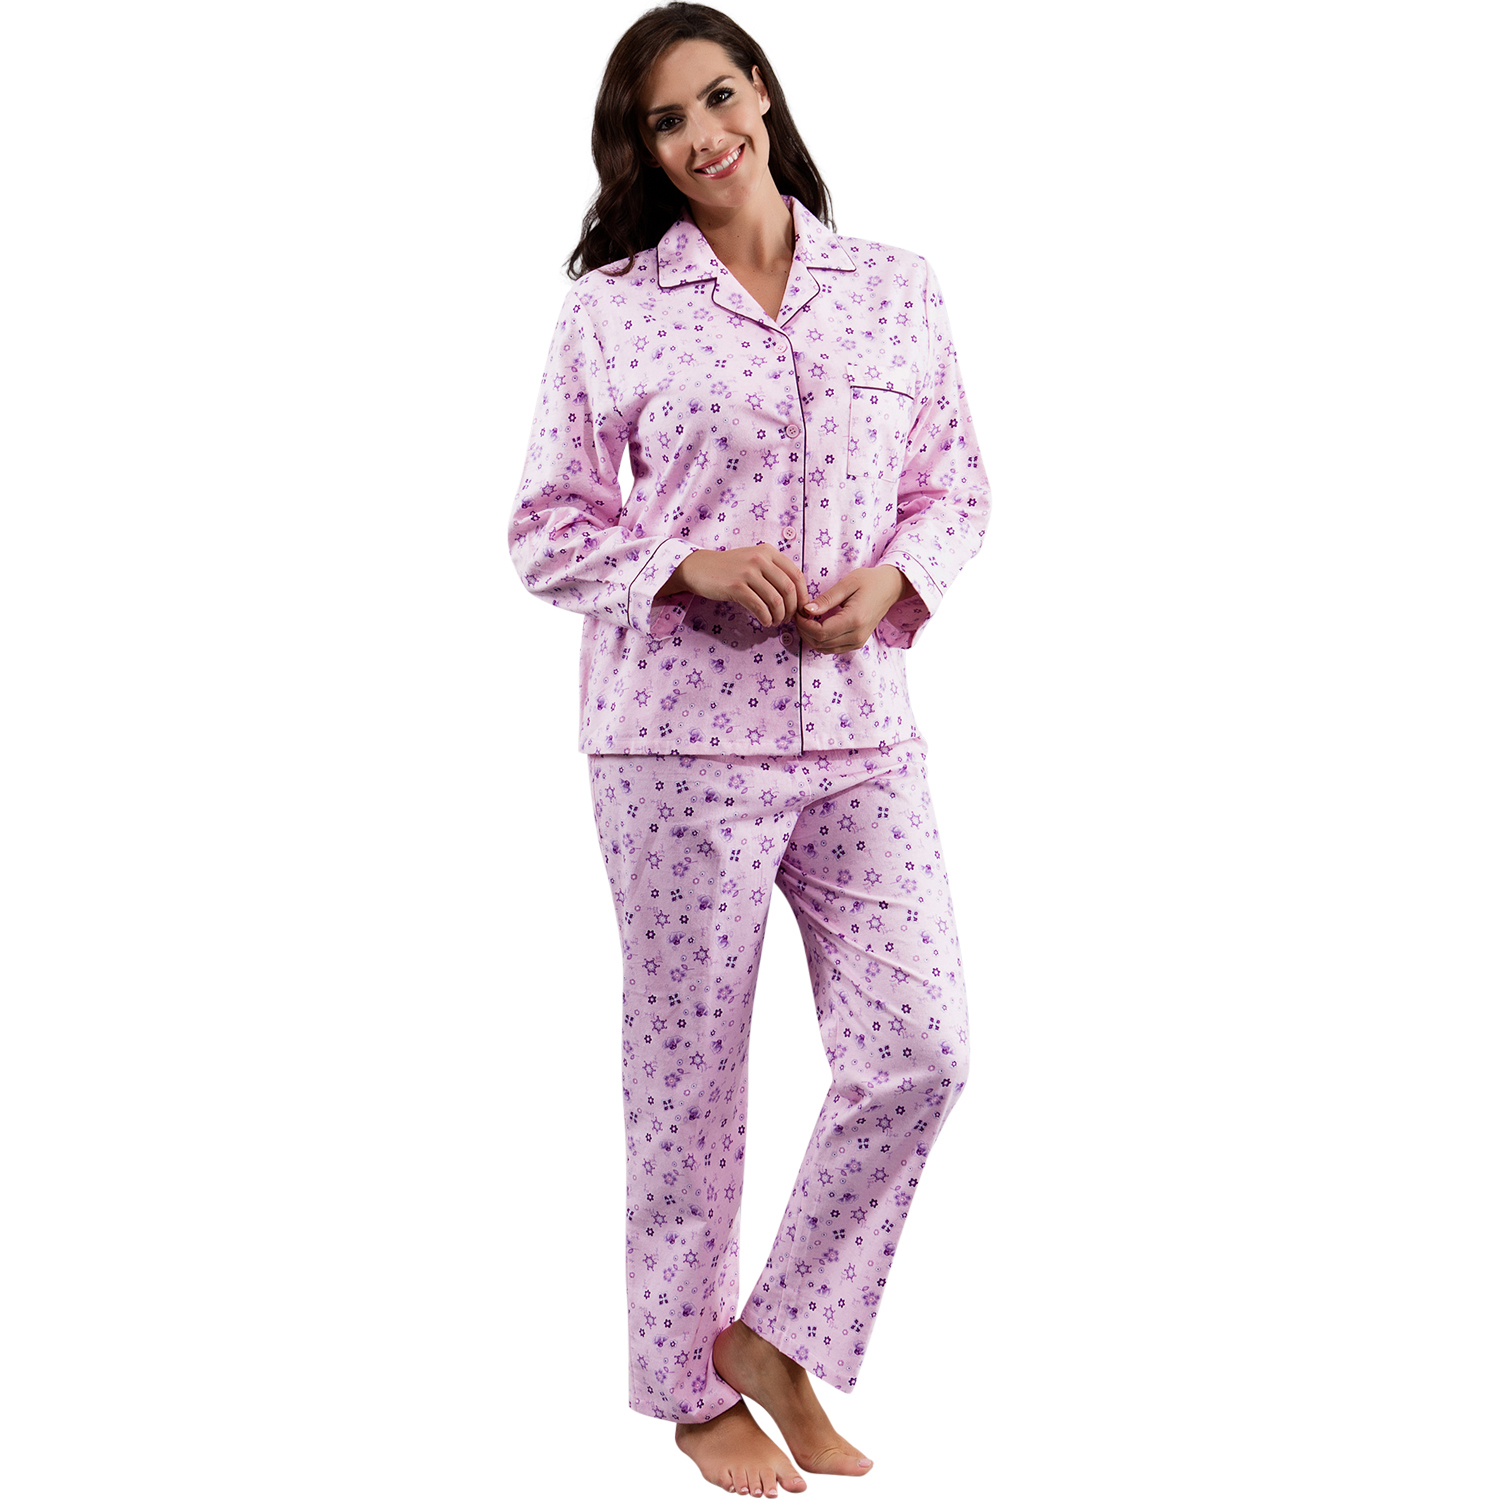 Pajama pants sets, matching tees & shorts sets, and night shirts--Nautica women's sleepwear features whimisical sailing-inspired prints and patterns for that nautical feel, while super soft cotton options keep you cozy whether you're sleeping or simply lounging around.